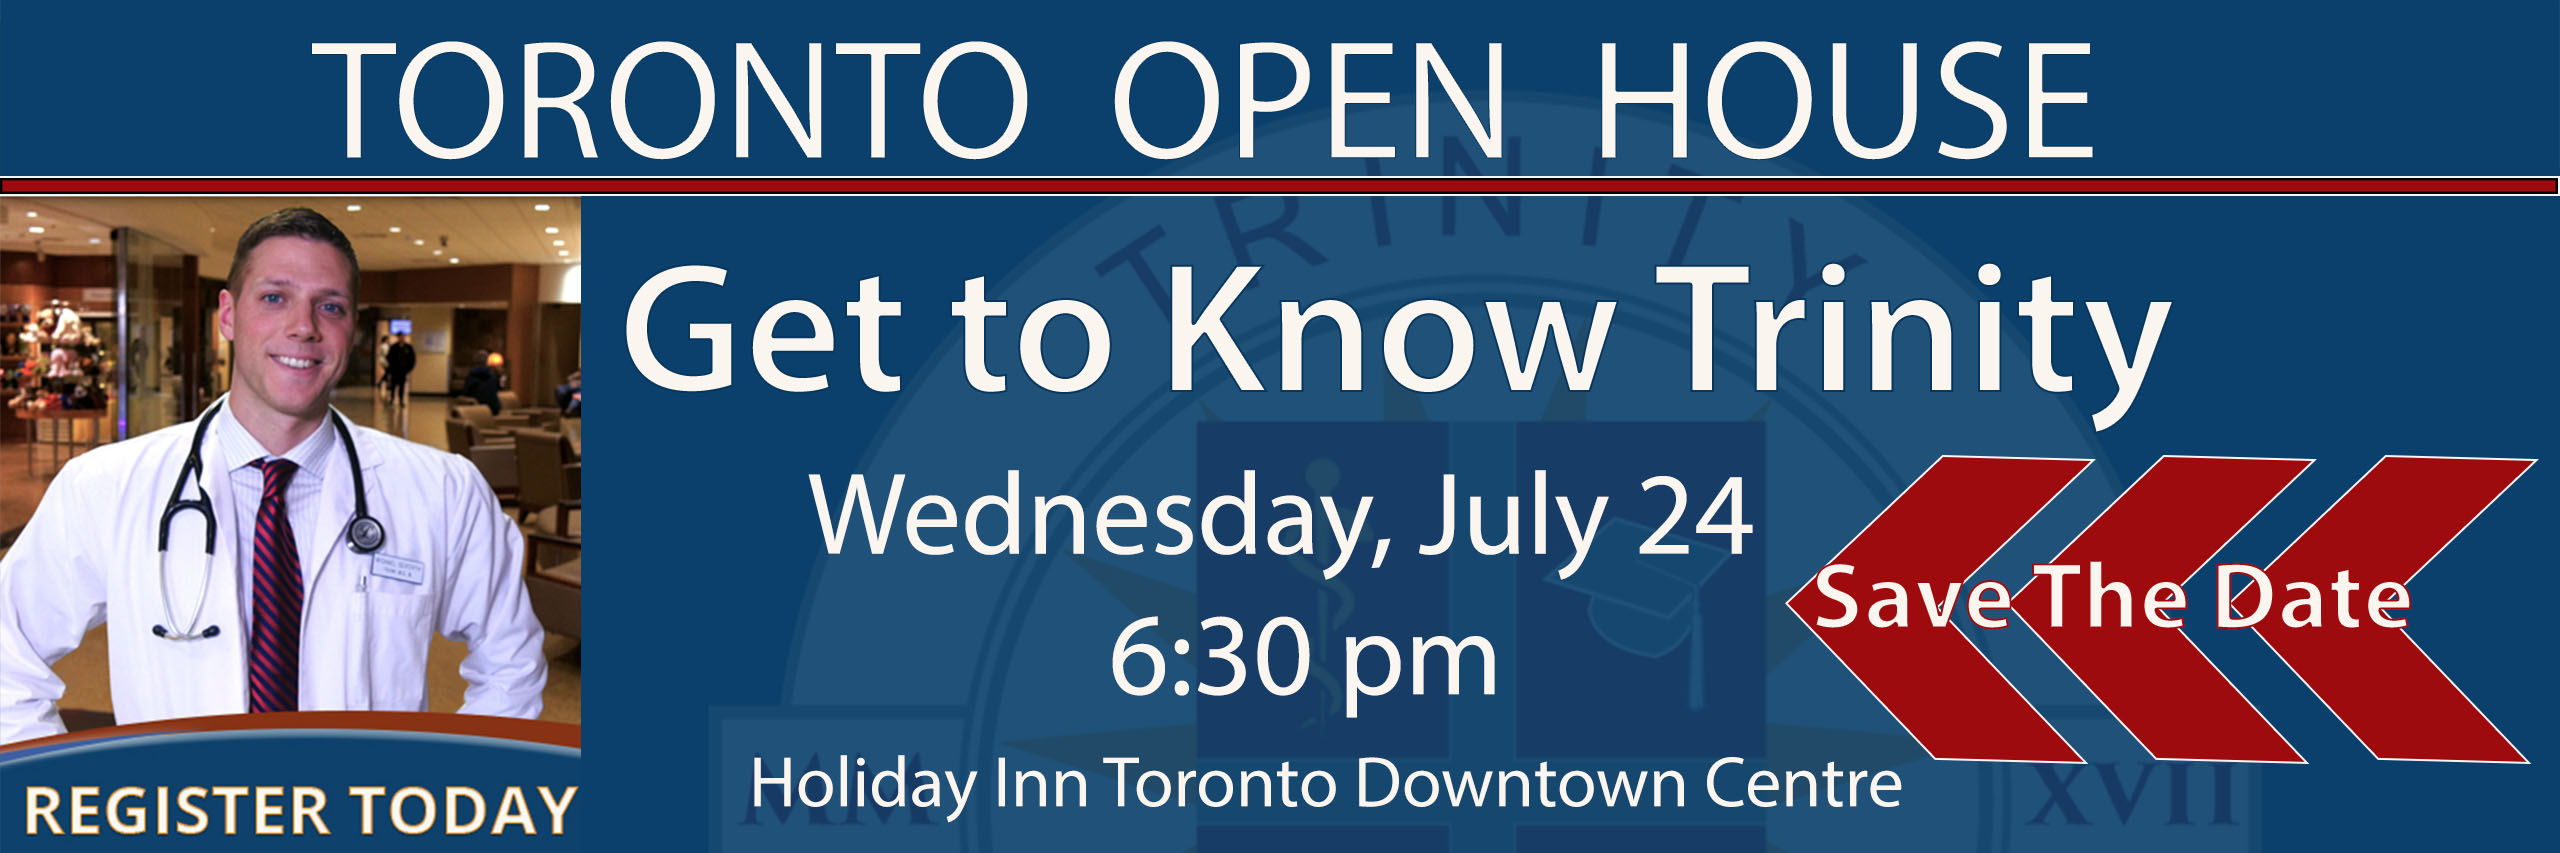 Canada Open House Toronto July 24th